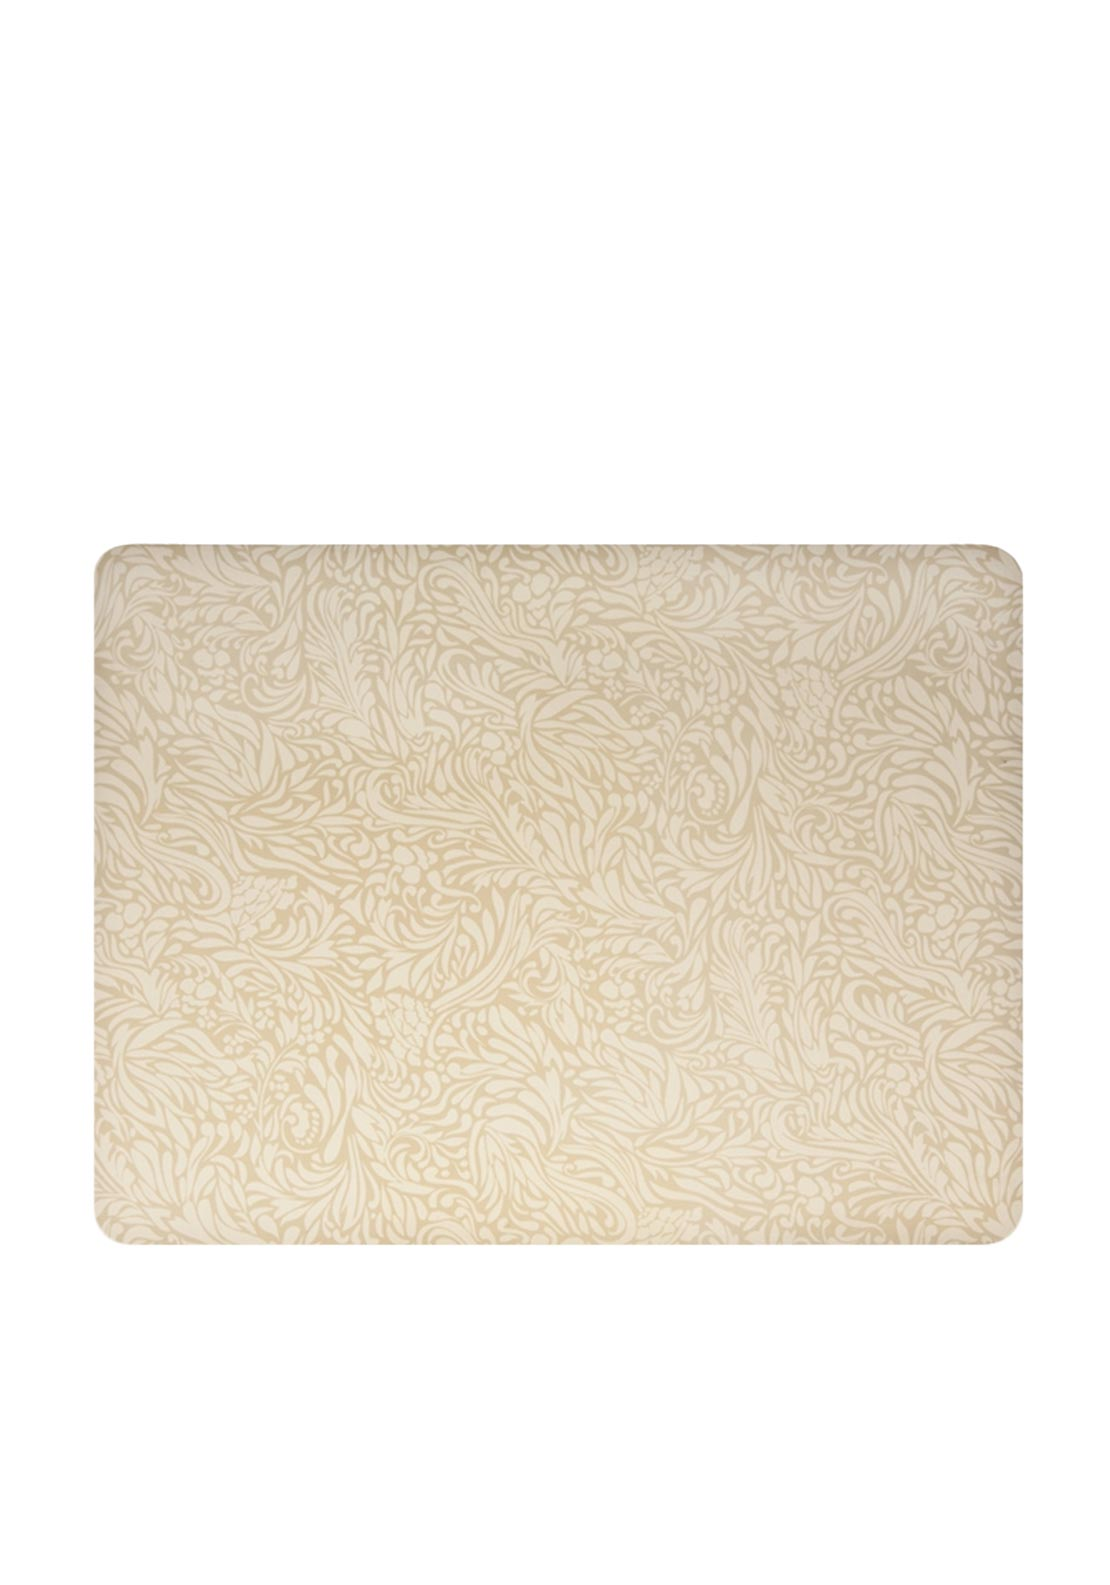 Denby Monsoon Home Set of Four Placemats, Lucille Gold